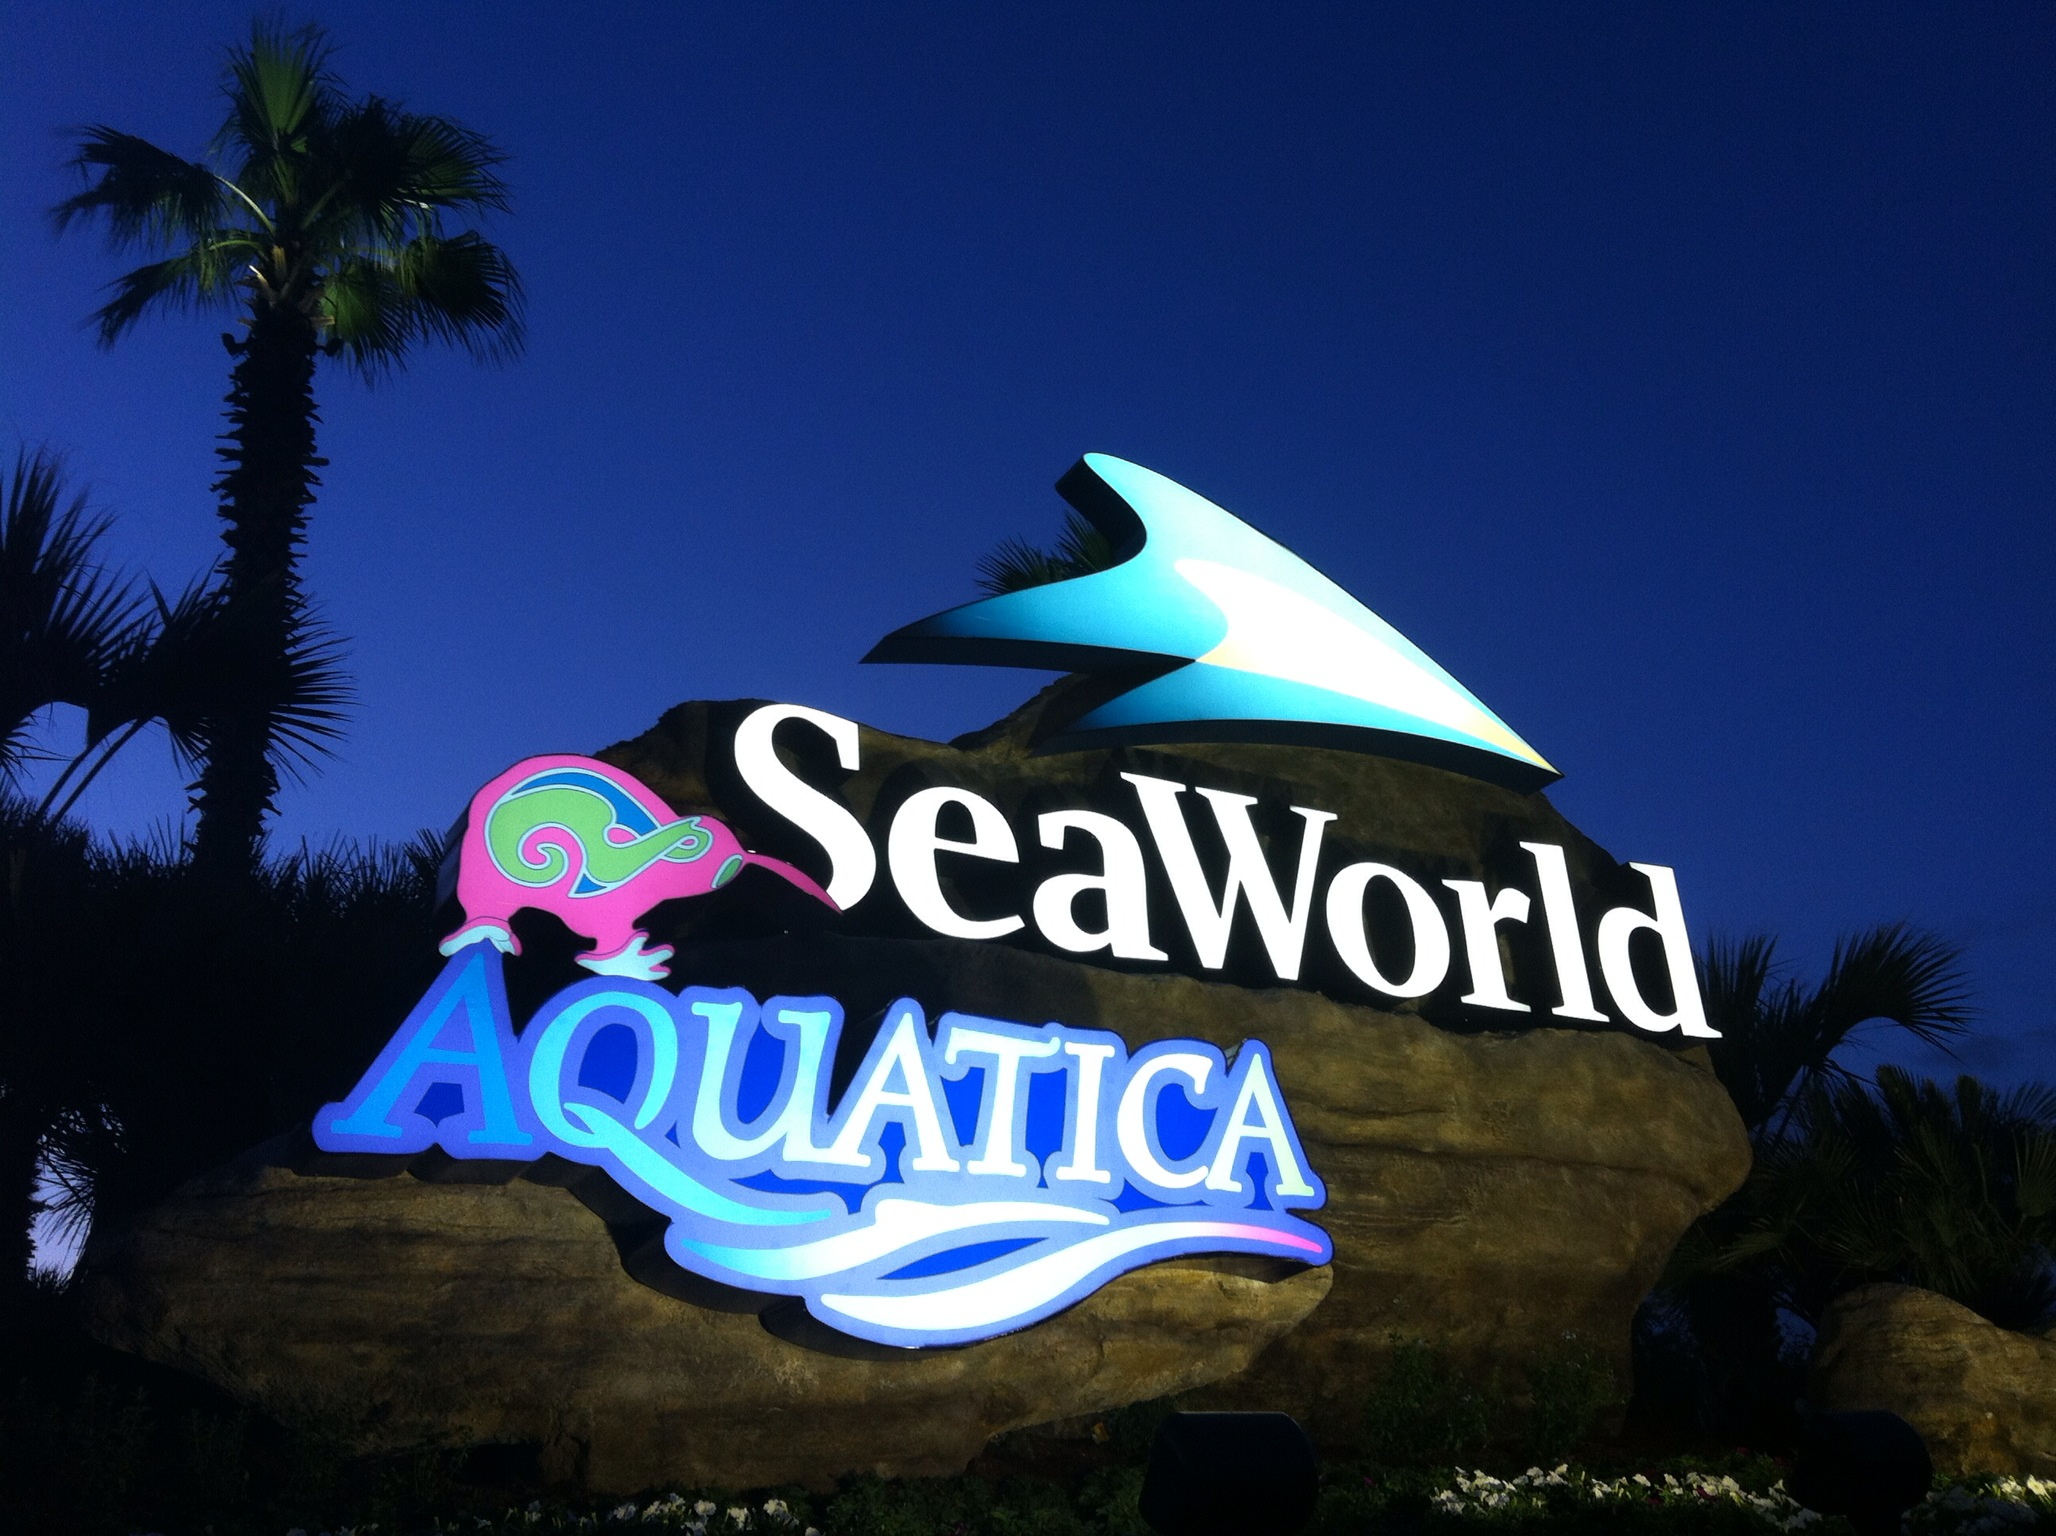 SEAWORLD ENTRY SIGN